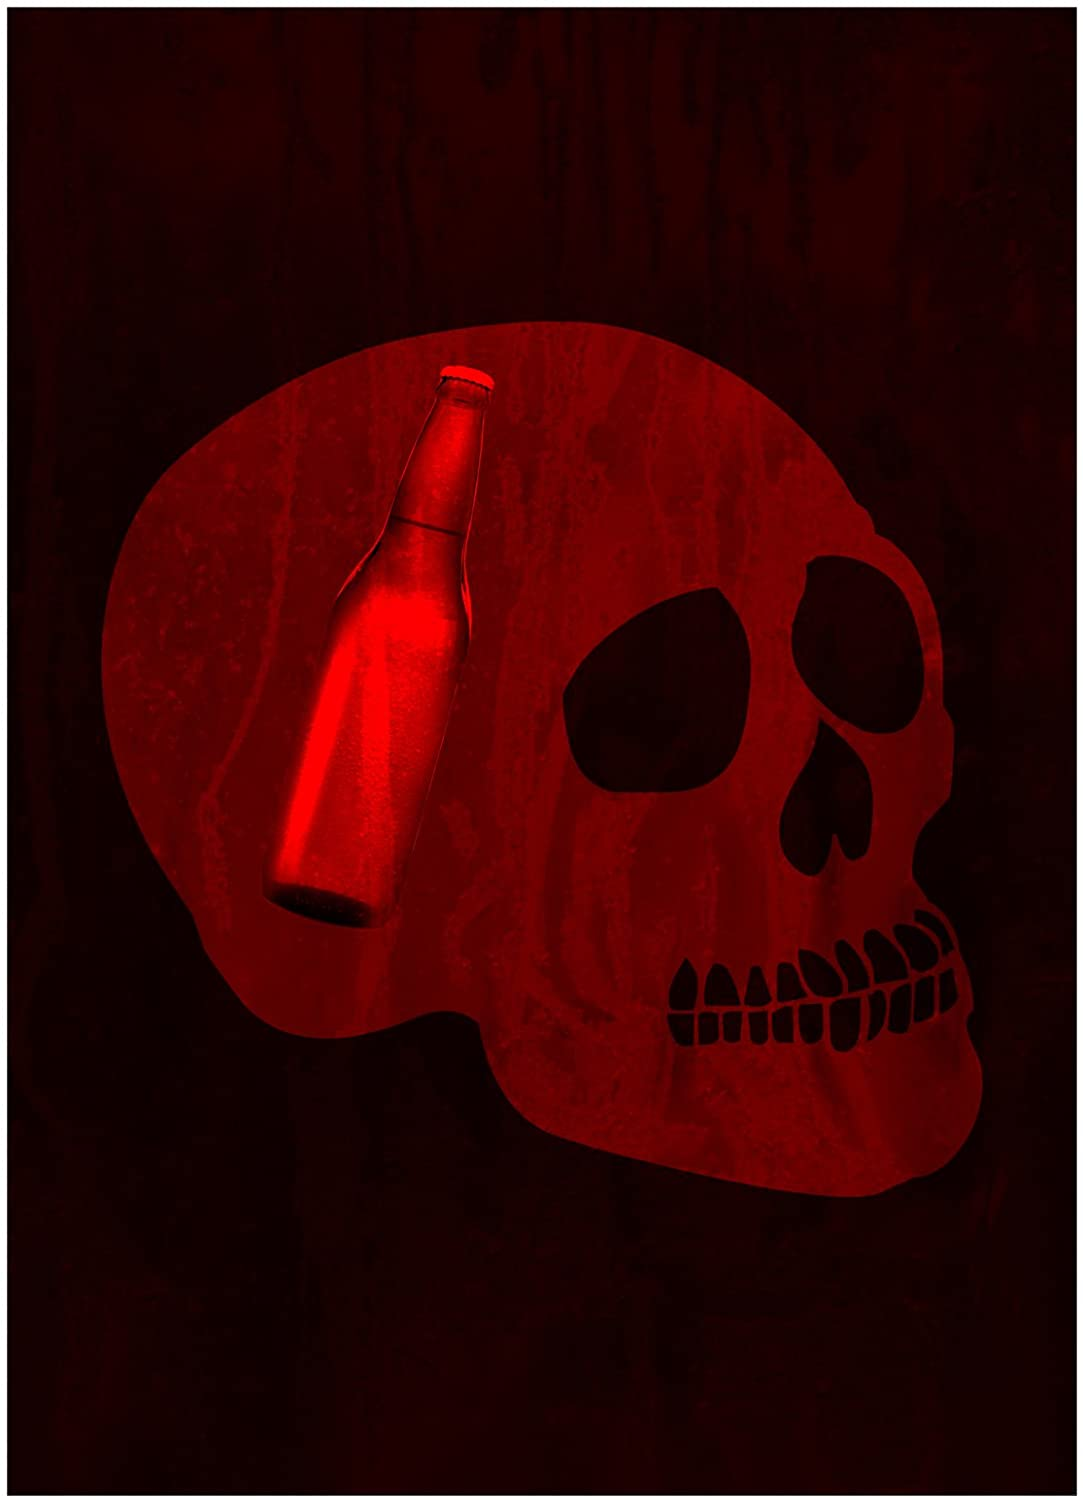 Red Skull Face with Bottle in Head Picture Fun Drinking Humor Bar Sign Aluminum Metal